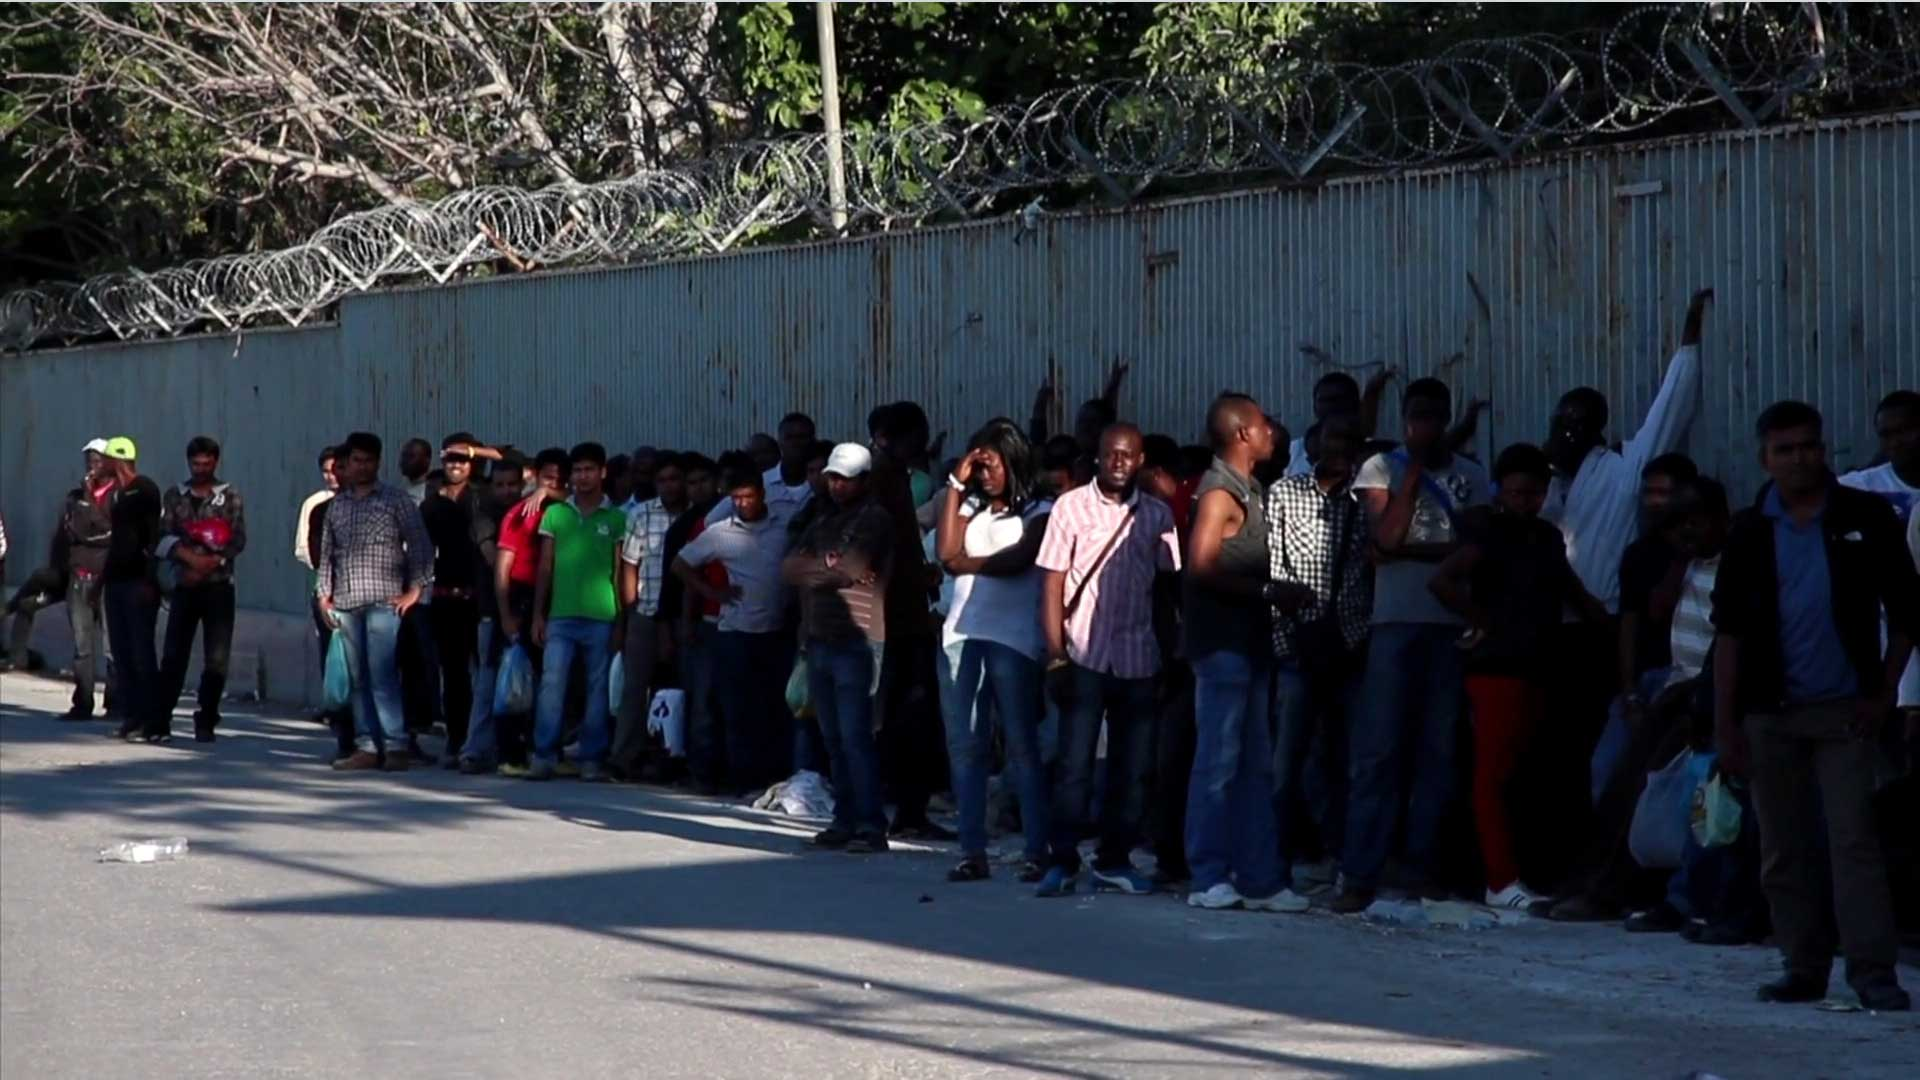 Long queue of people in front of a wall